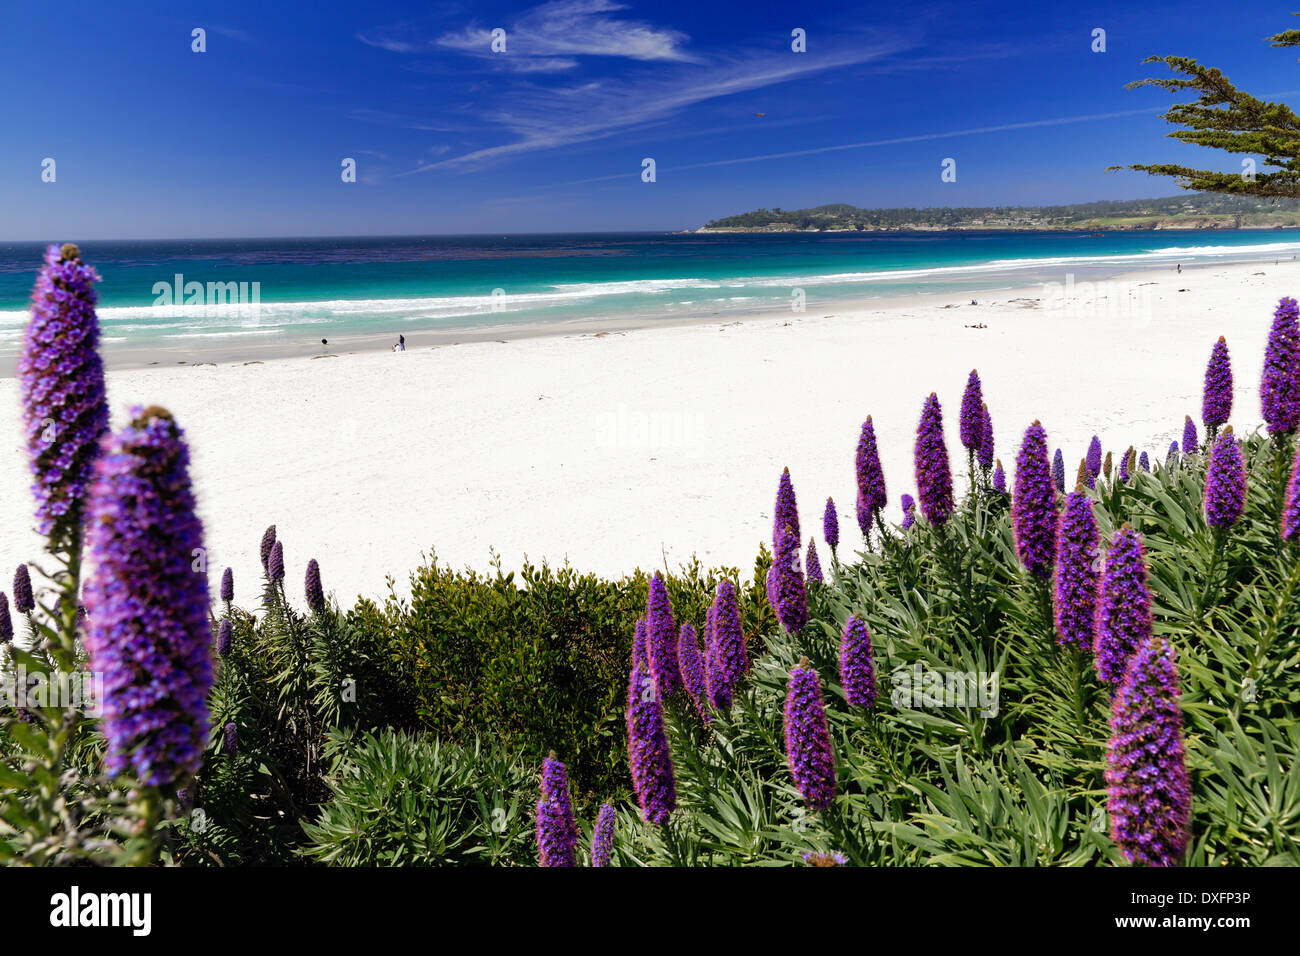 Wildflowers (Pride of Madeira) Blooming Along the Pacific Beach, Carmel-by the Sea, Monterey Peninsula, California. - Stock Image